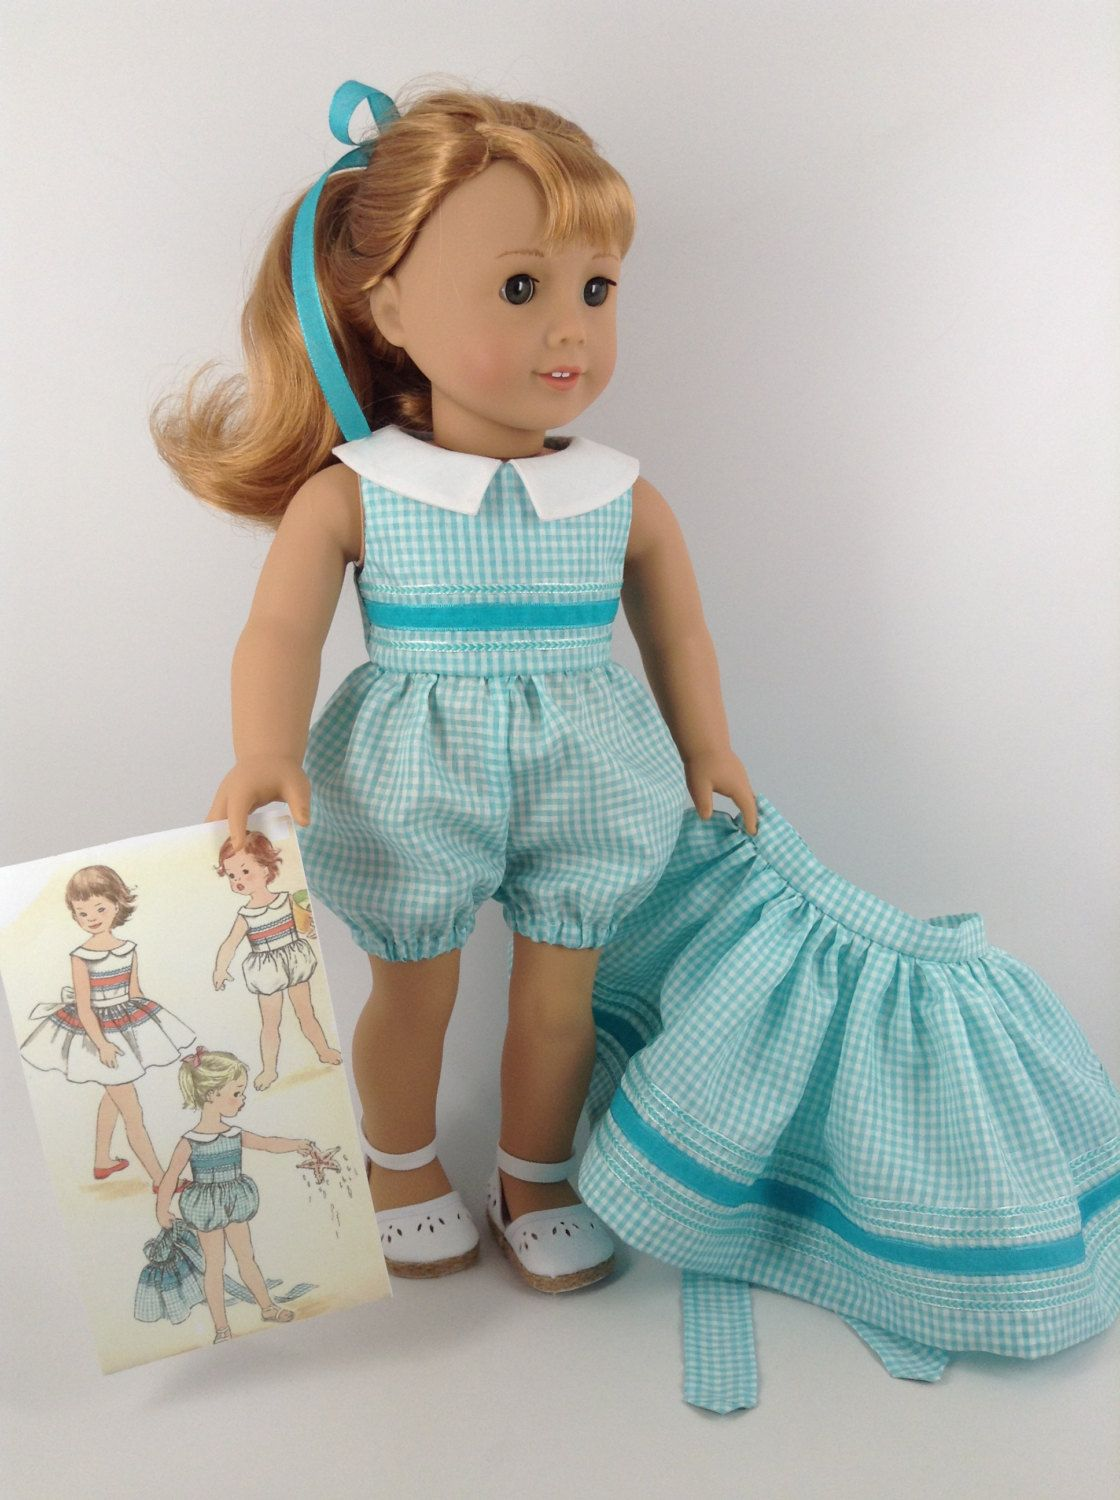 Doll Clothes Closet - How to make a closet for American Girl Dolls ...